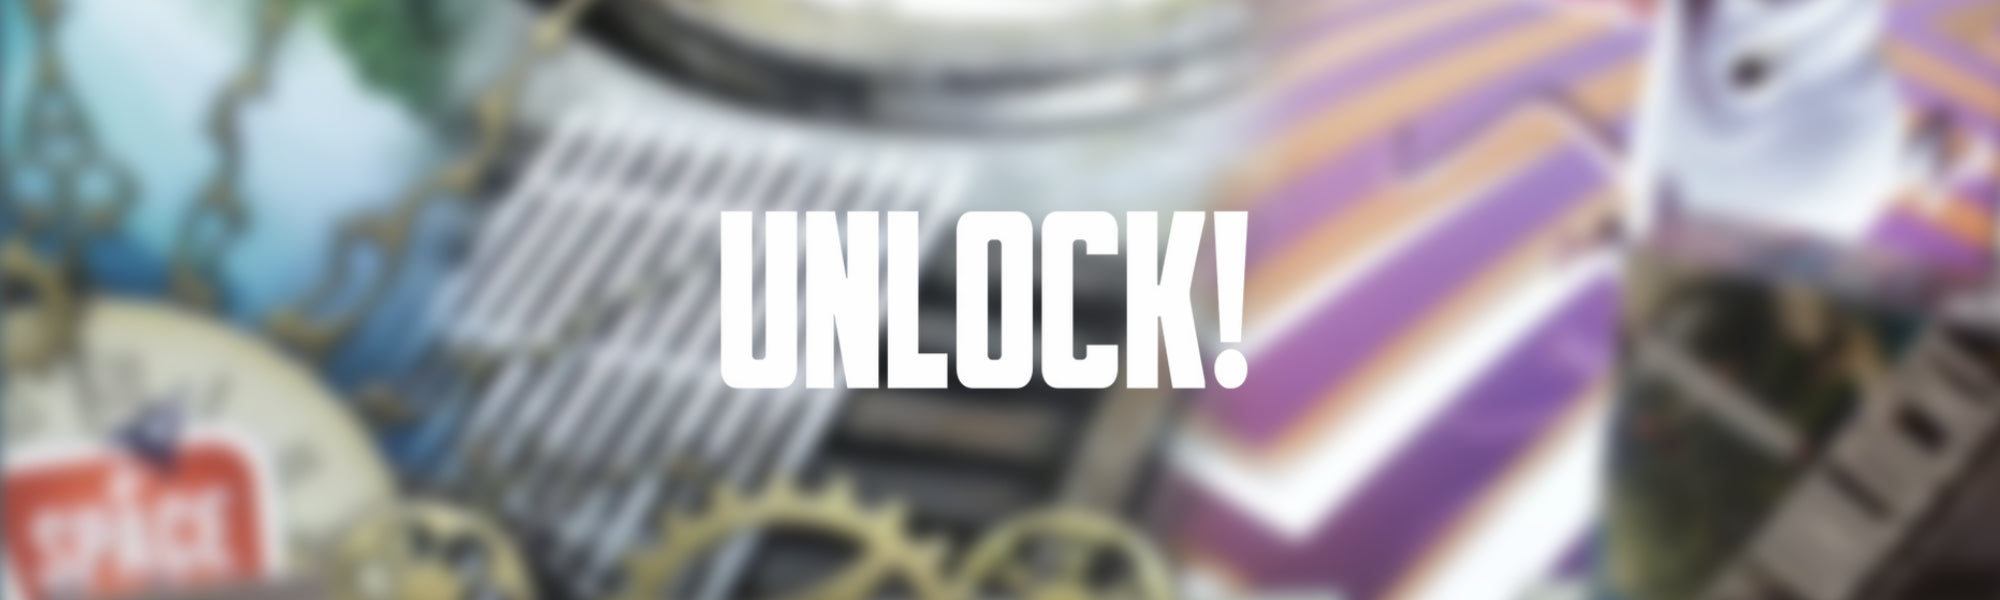 Unlock! - Escape Adventures - Escape Room Game